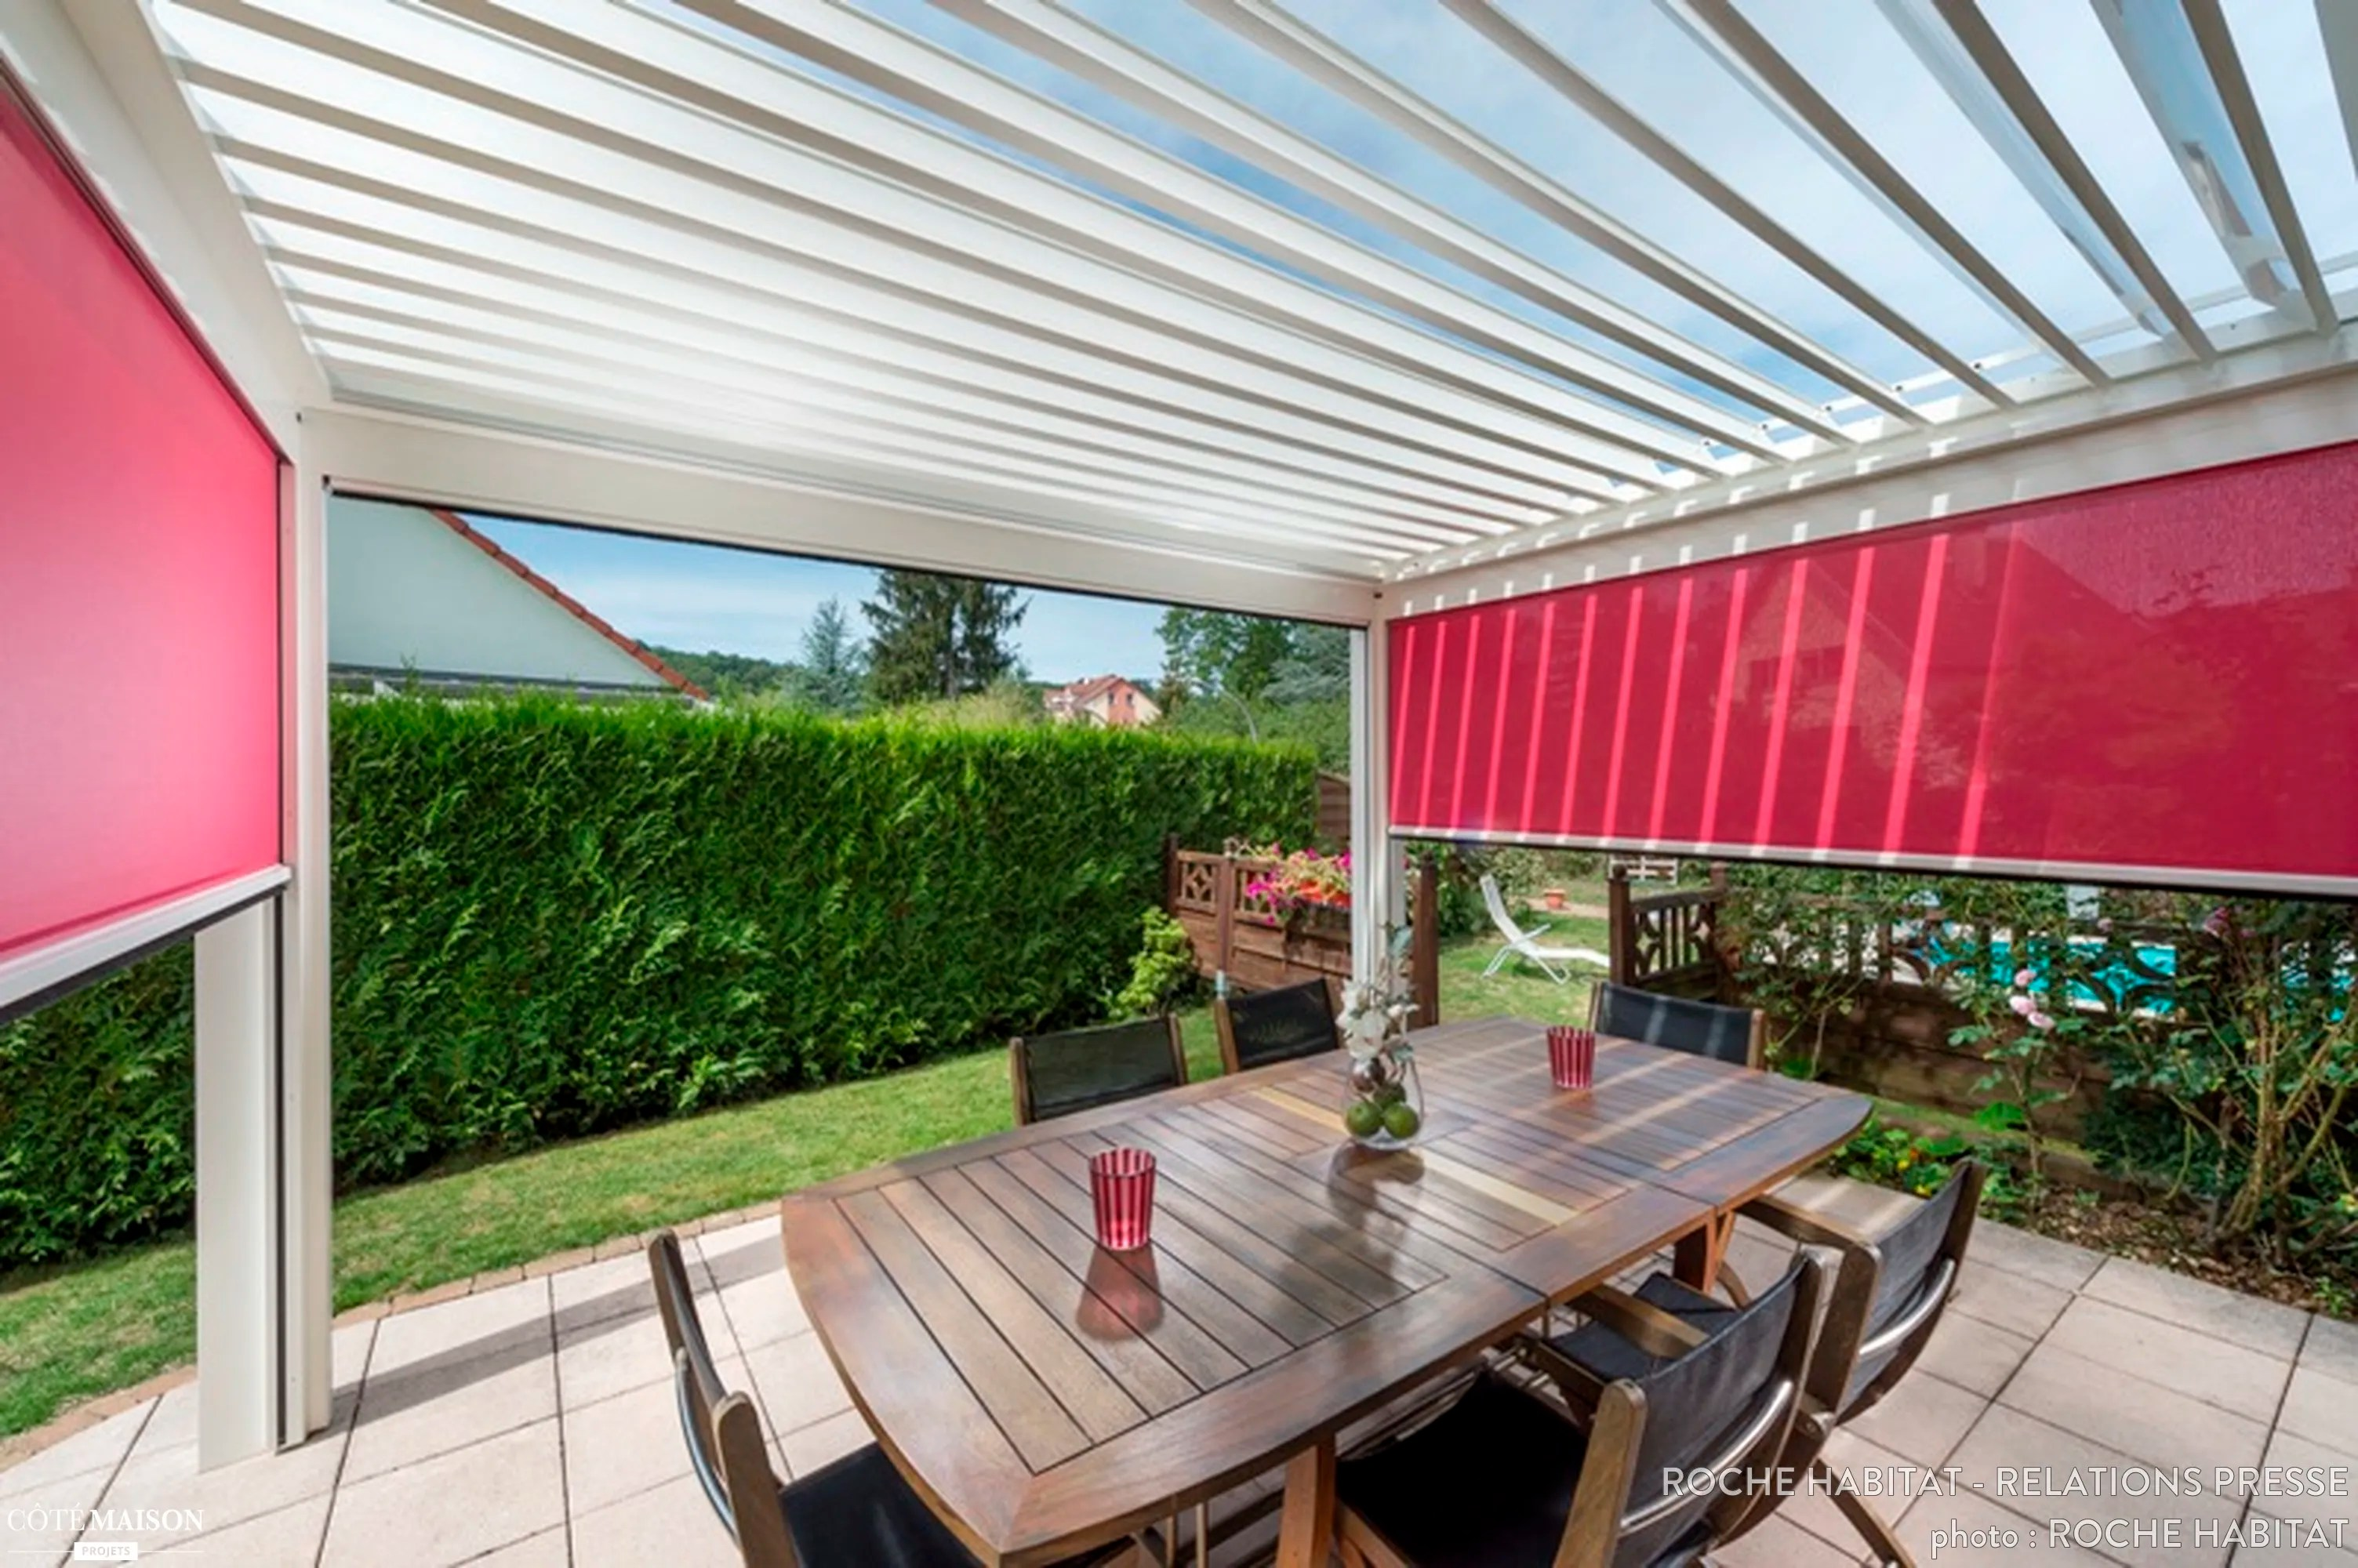 Amenagement Terrasse Tonnelle Terrasse Amenagement Terrasse Pergola Auvent Accueil